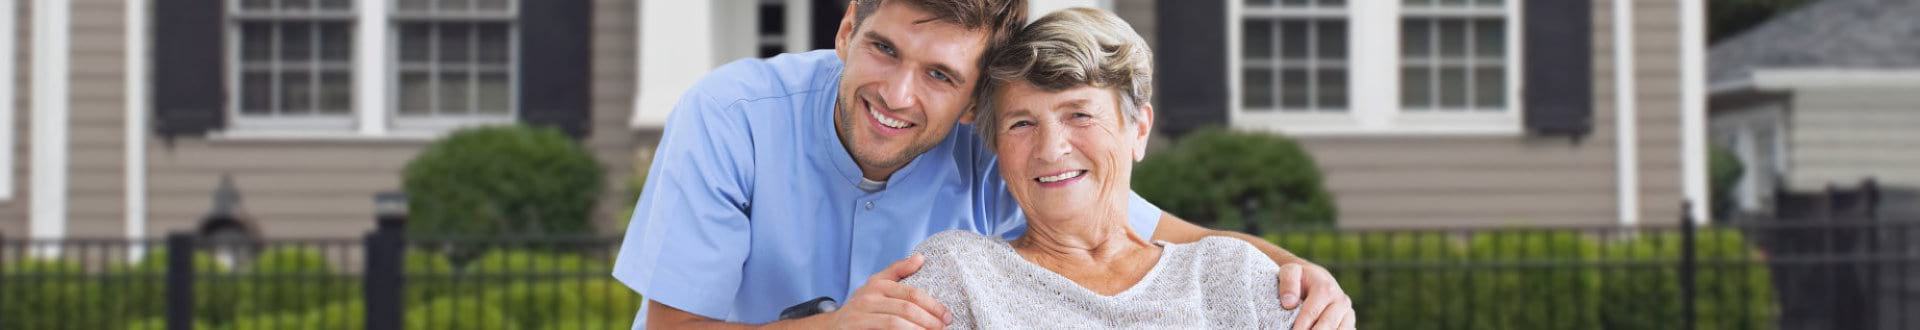 senior woman with male caregiver smiling